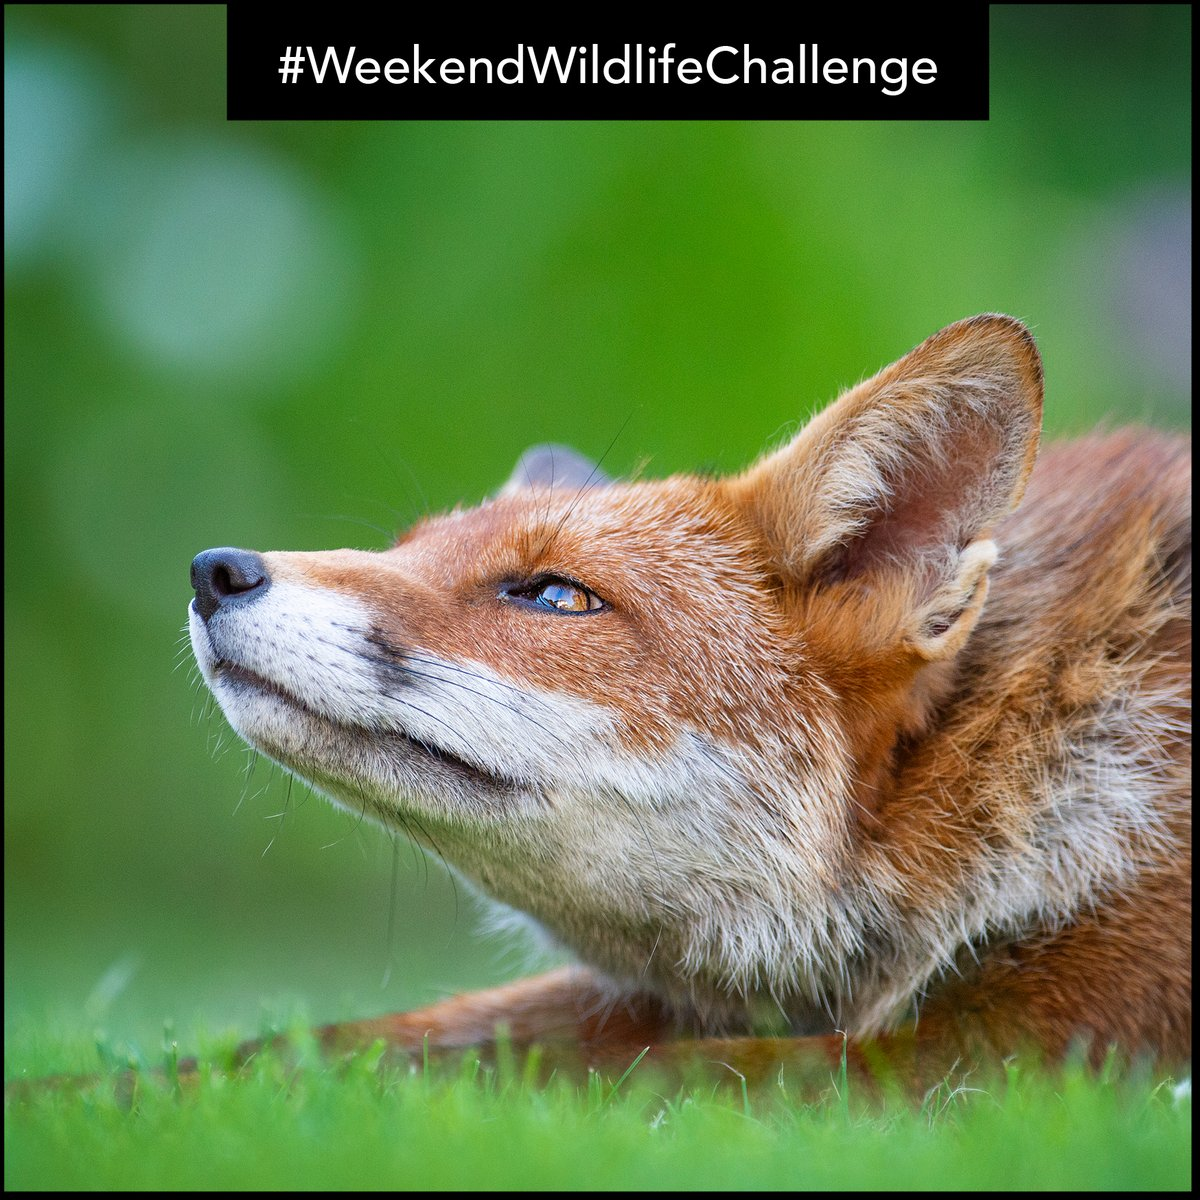 With foxes being much more active recently, we want to see YOUR #fox photos for this weeks #WeekendWildlifeChallenge!  Please leave your photos as a reply to this tweet and we will feature a selection on Monday! 🦊  #WildlifePhotography #AnimalPhotography